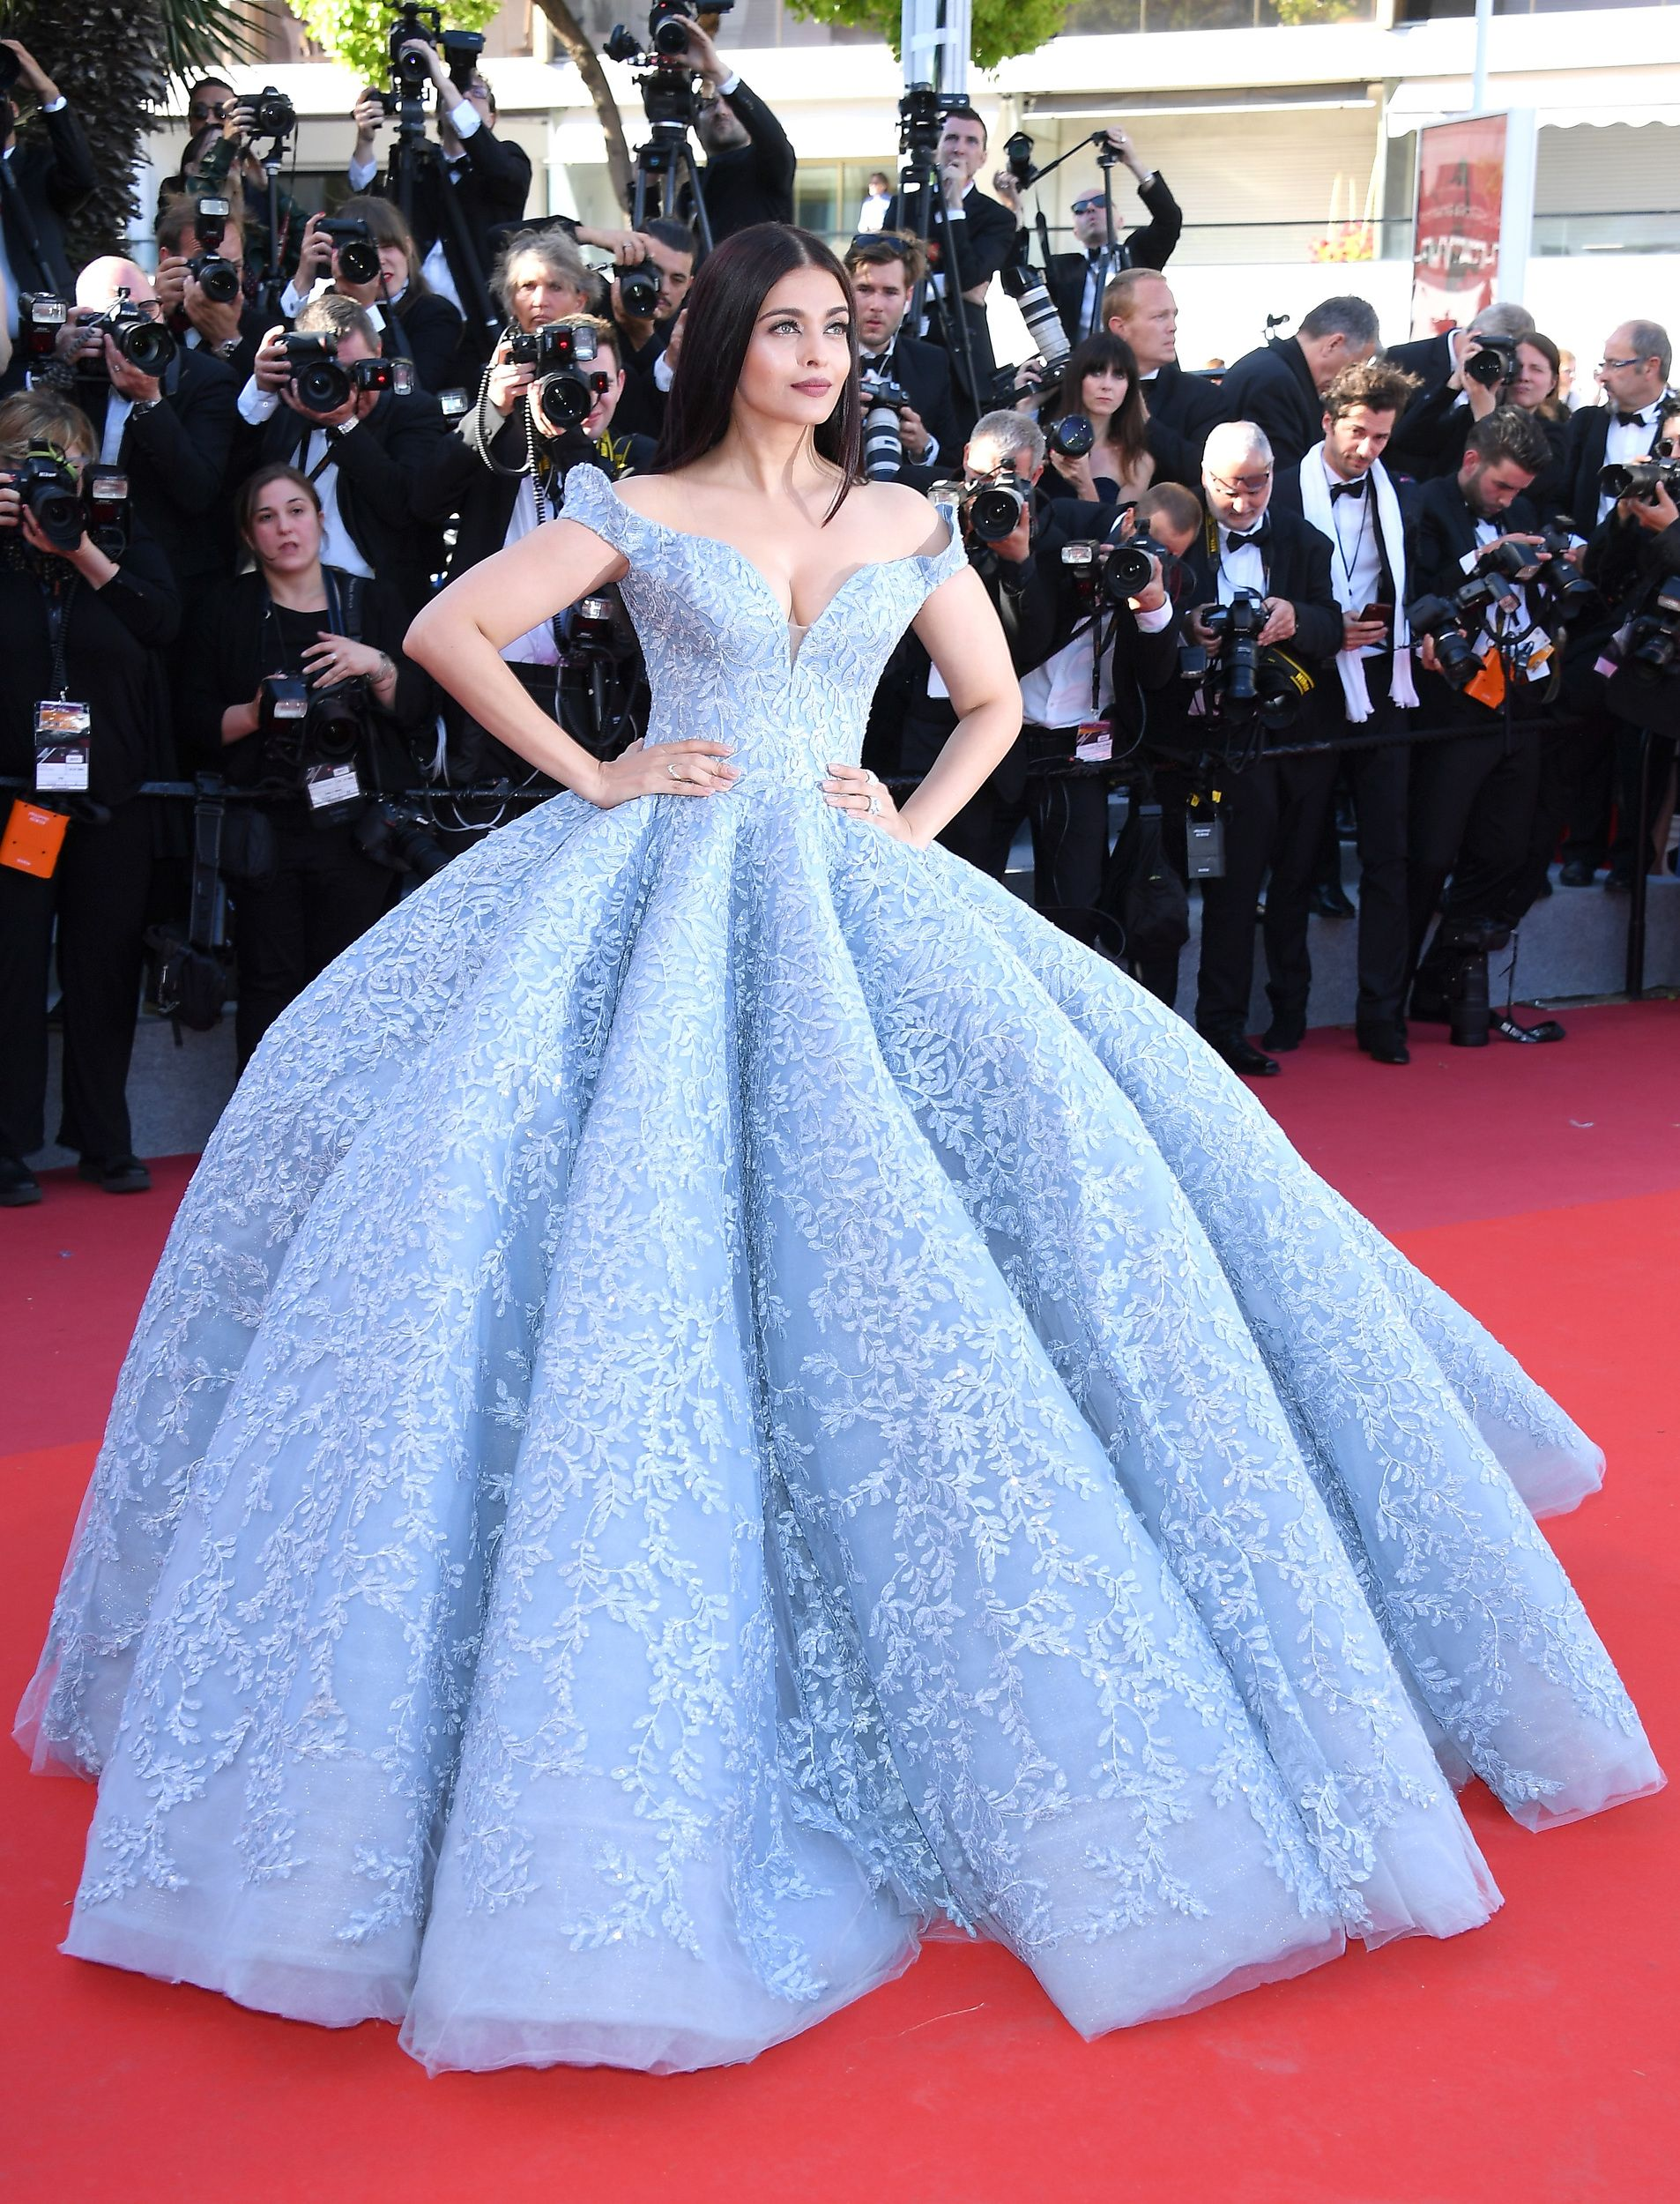 Bella Hadid Steals The Show In Red Gown At Cannes Did She Have Another Wardrobe Mishap Gowns Cinderella Dresses Pretty Dresses